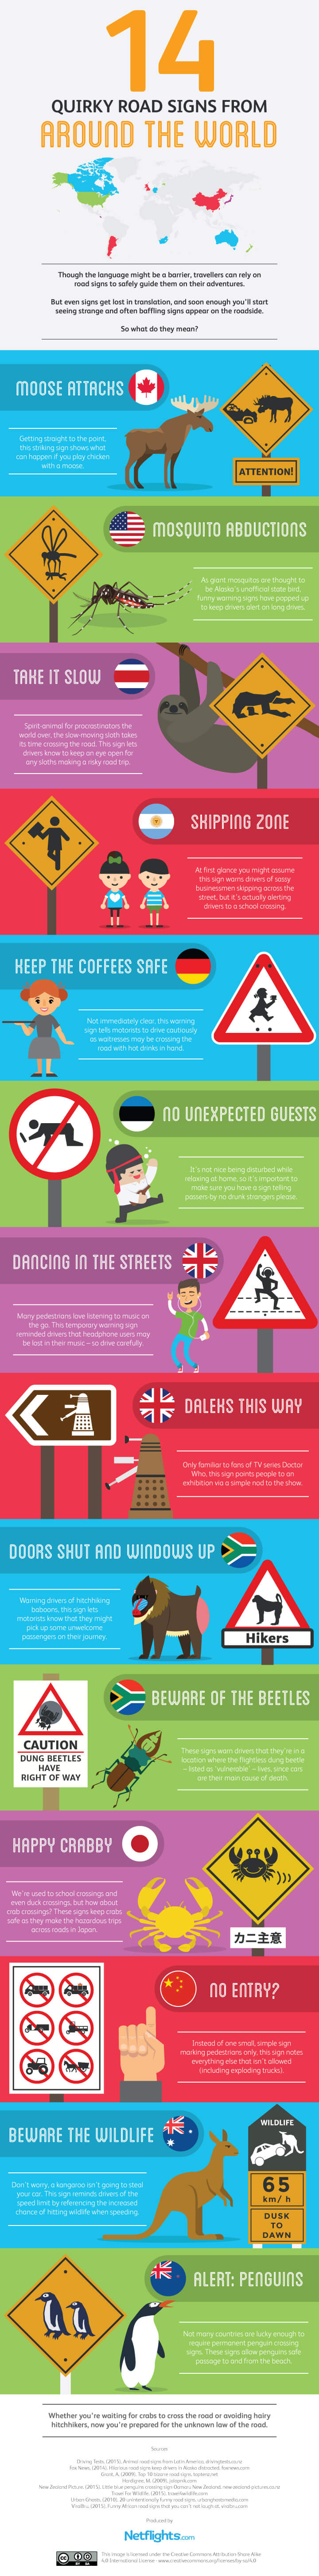 14 Quirky Road Signs from Around the World